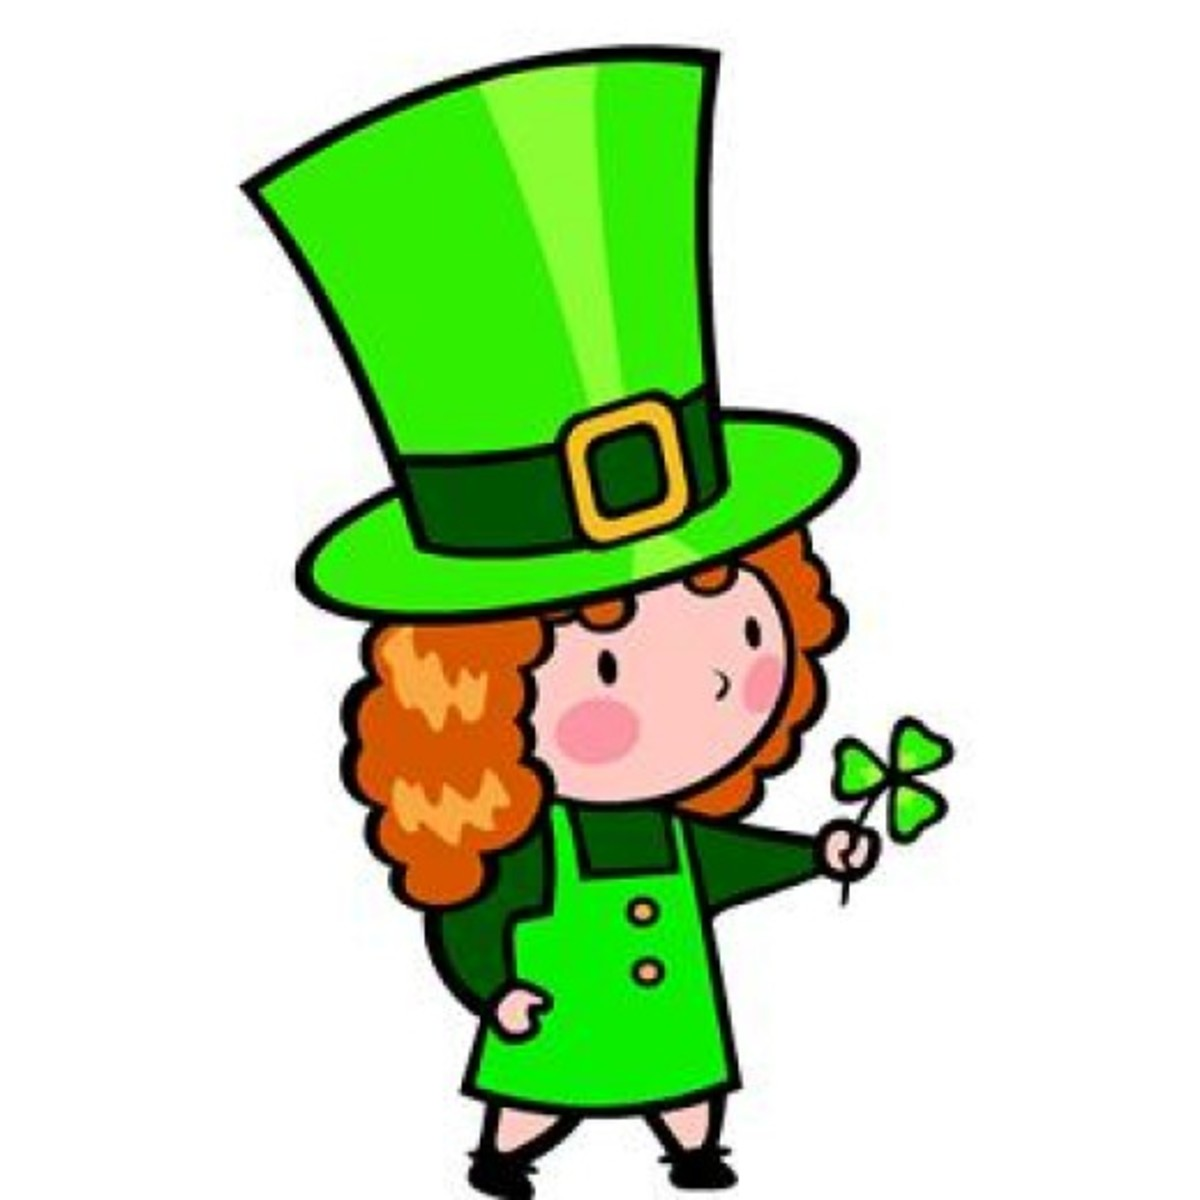 Irish Girl Holding Shamrock